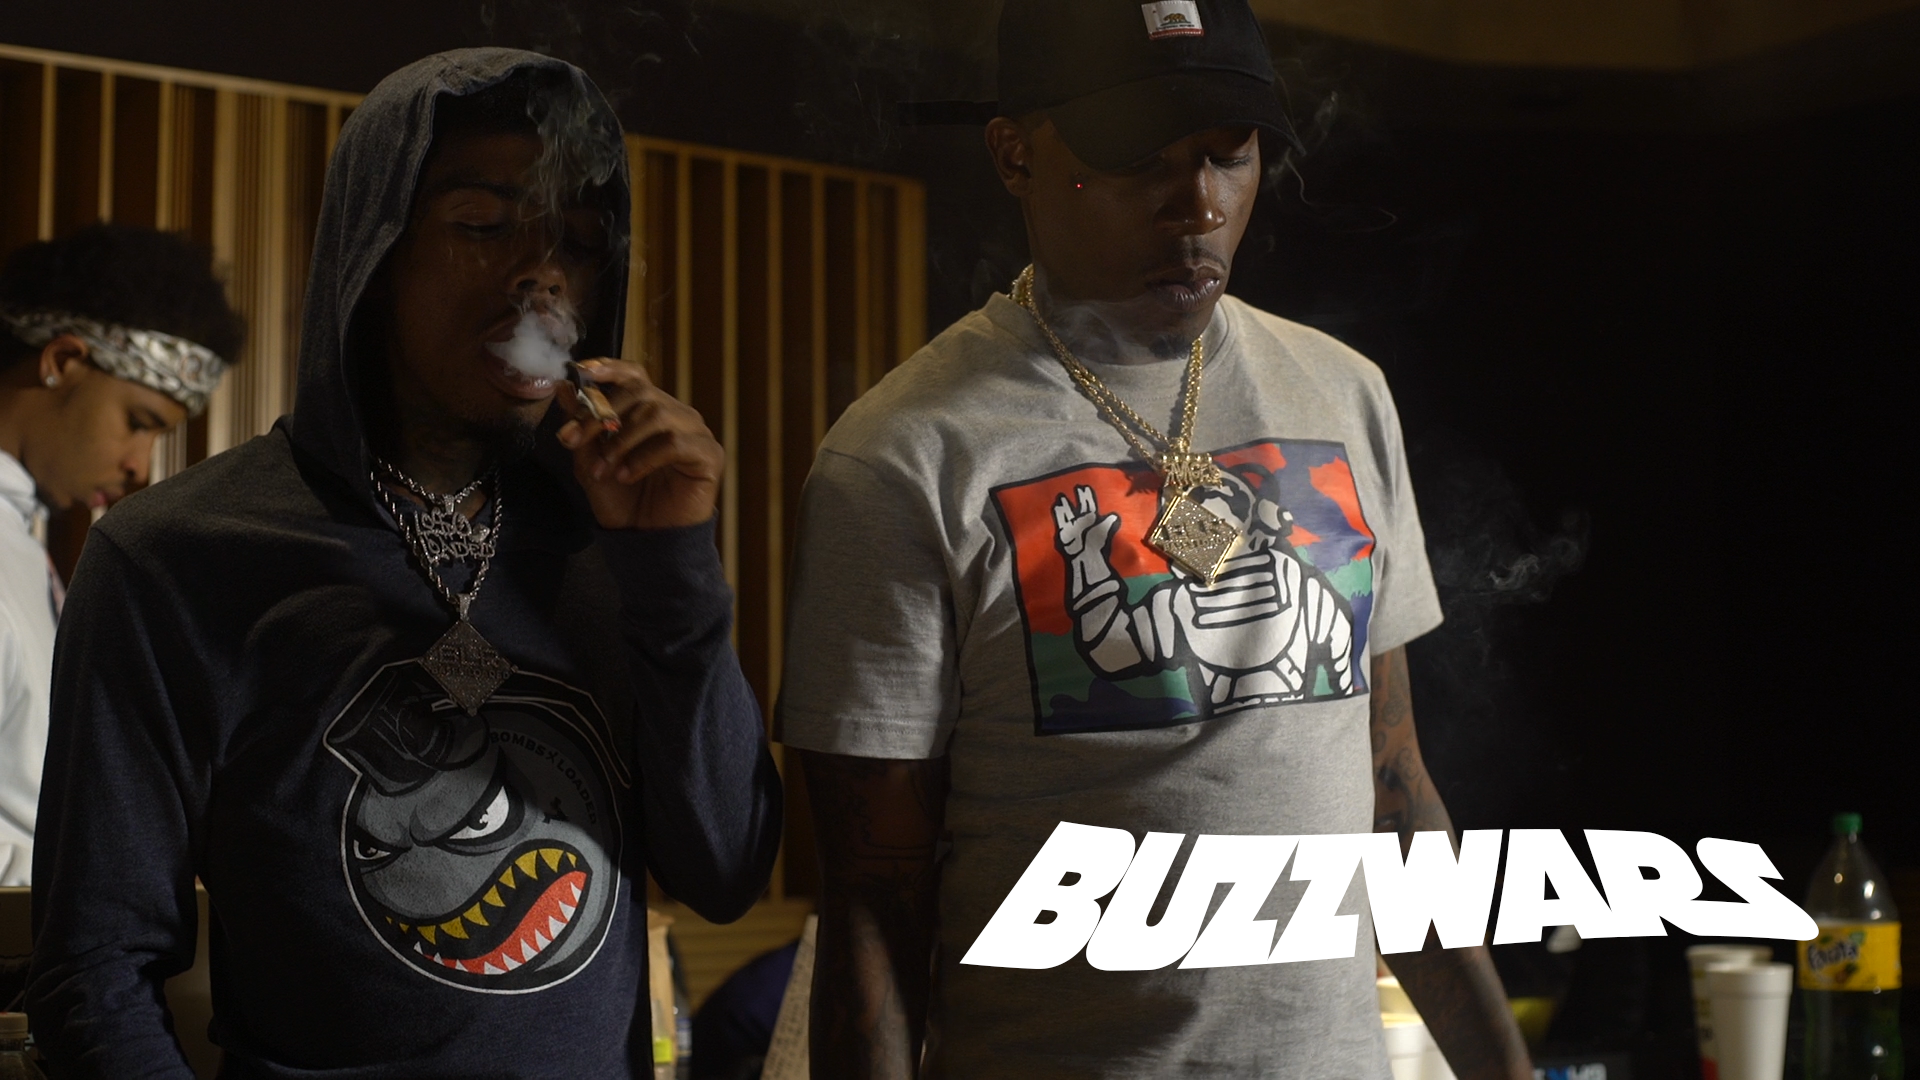 BTB | Loso Loaded & Lotto Savage [by Buzz Wars]